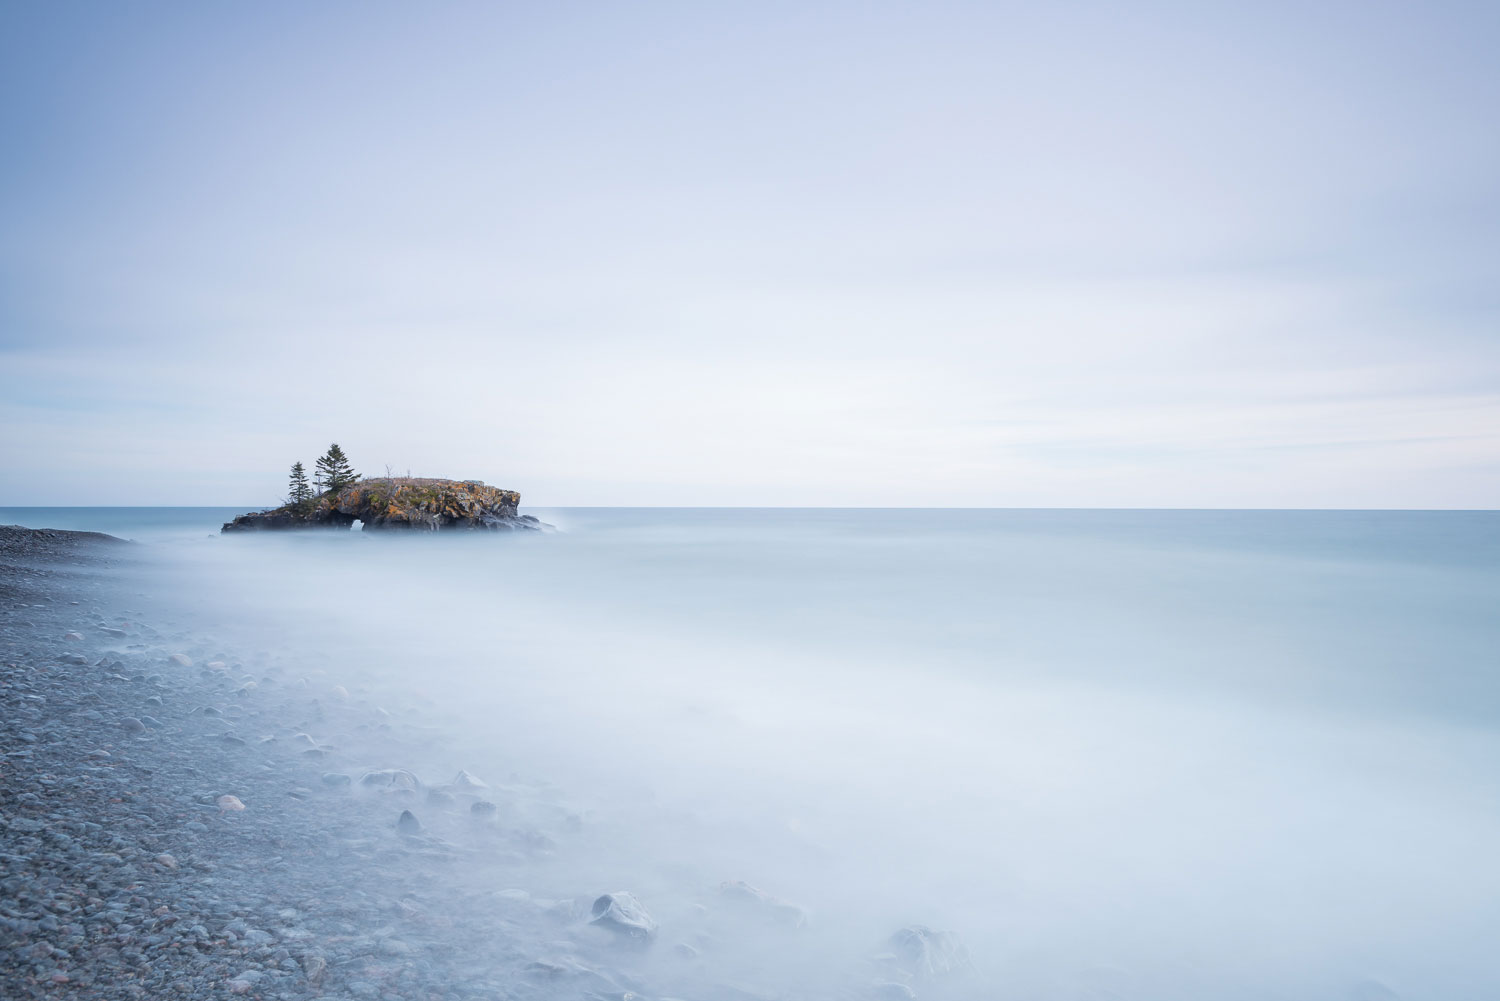 Hollow Rock - Grand Portage, MN  Nikon D800E + Nikon 17-35mm f2.8